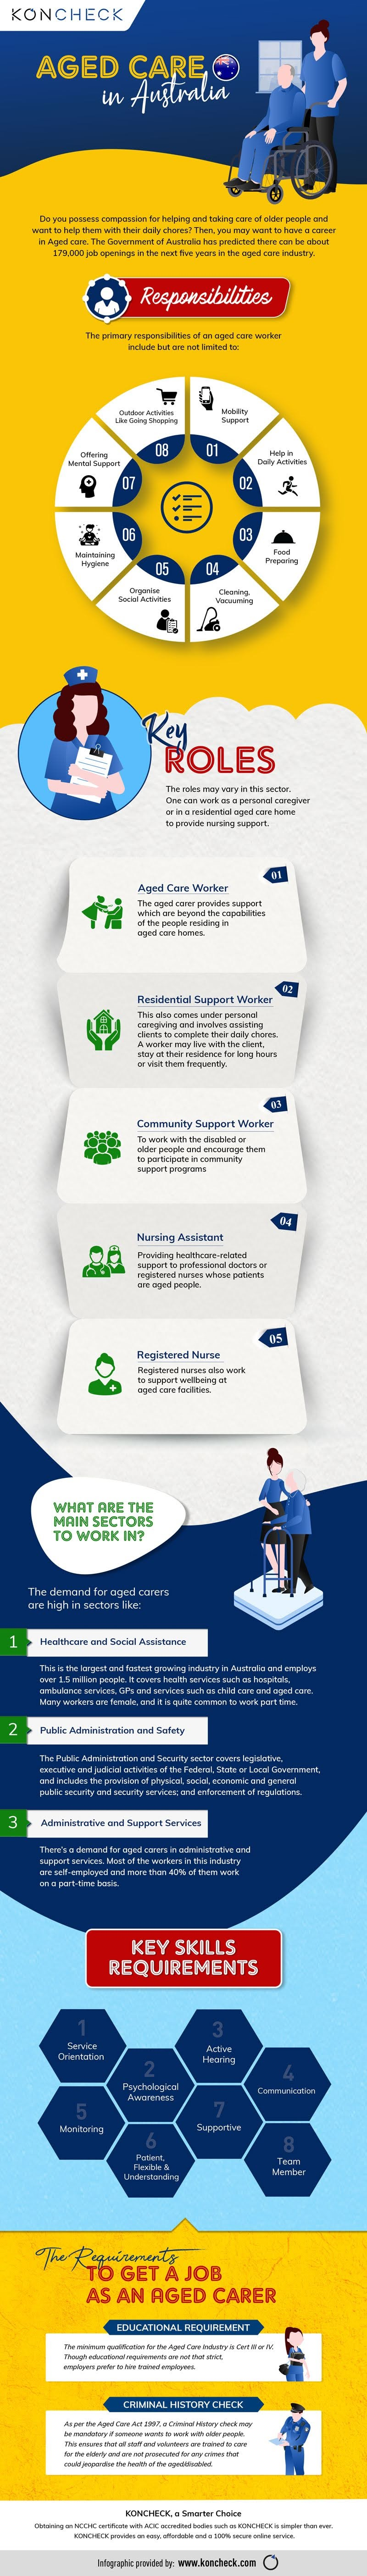 what-are-the-responsibilities-and-requirements-to-work-in-the-aged-care-sector-infographic